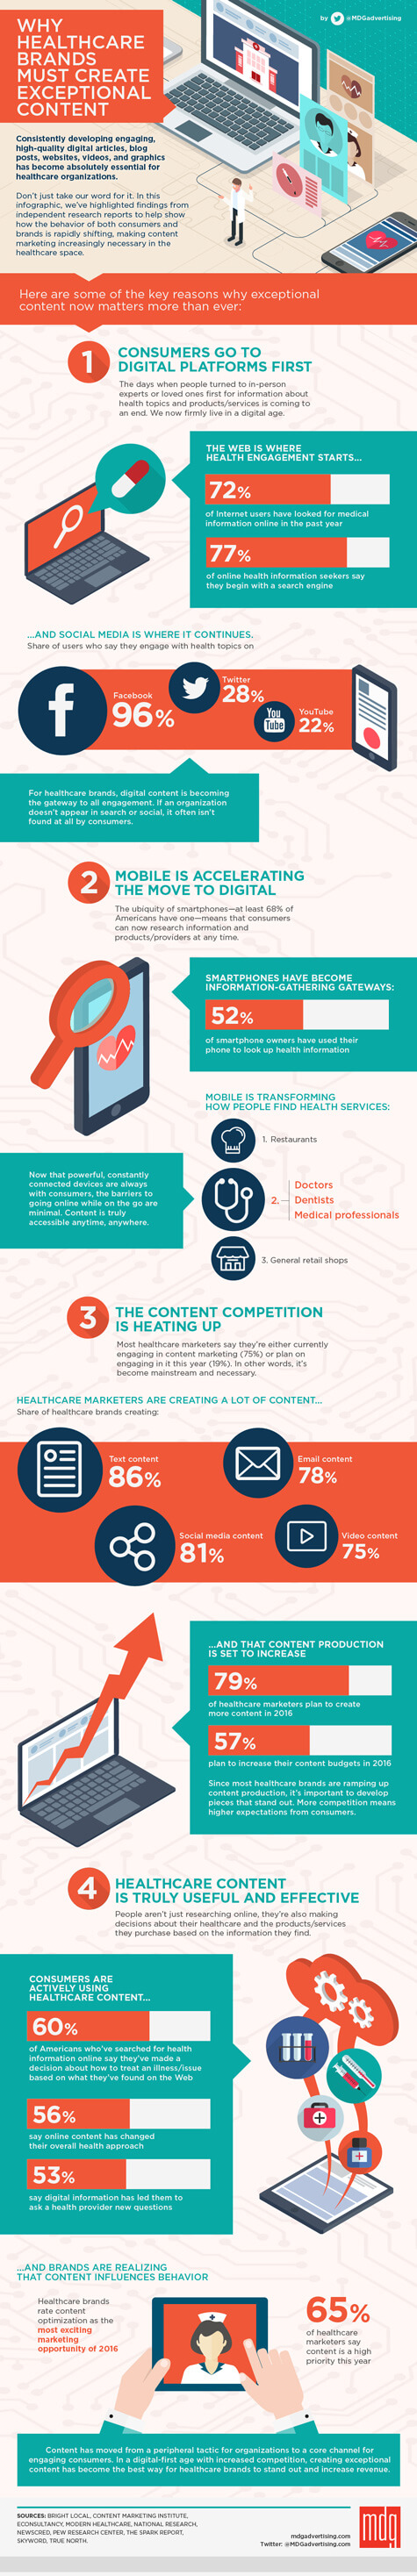 1823 475x2936 Why Healthcare Brands Must Create Exceptional Content